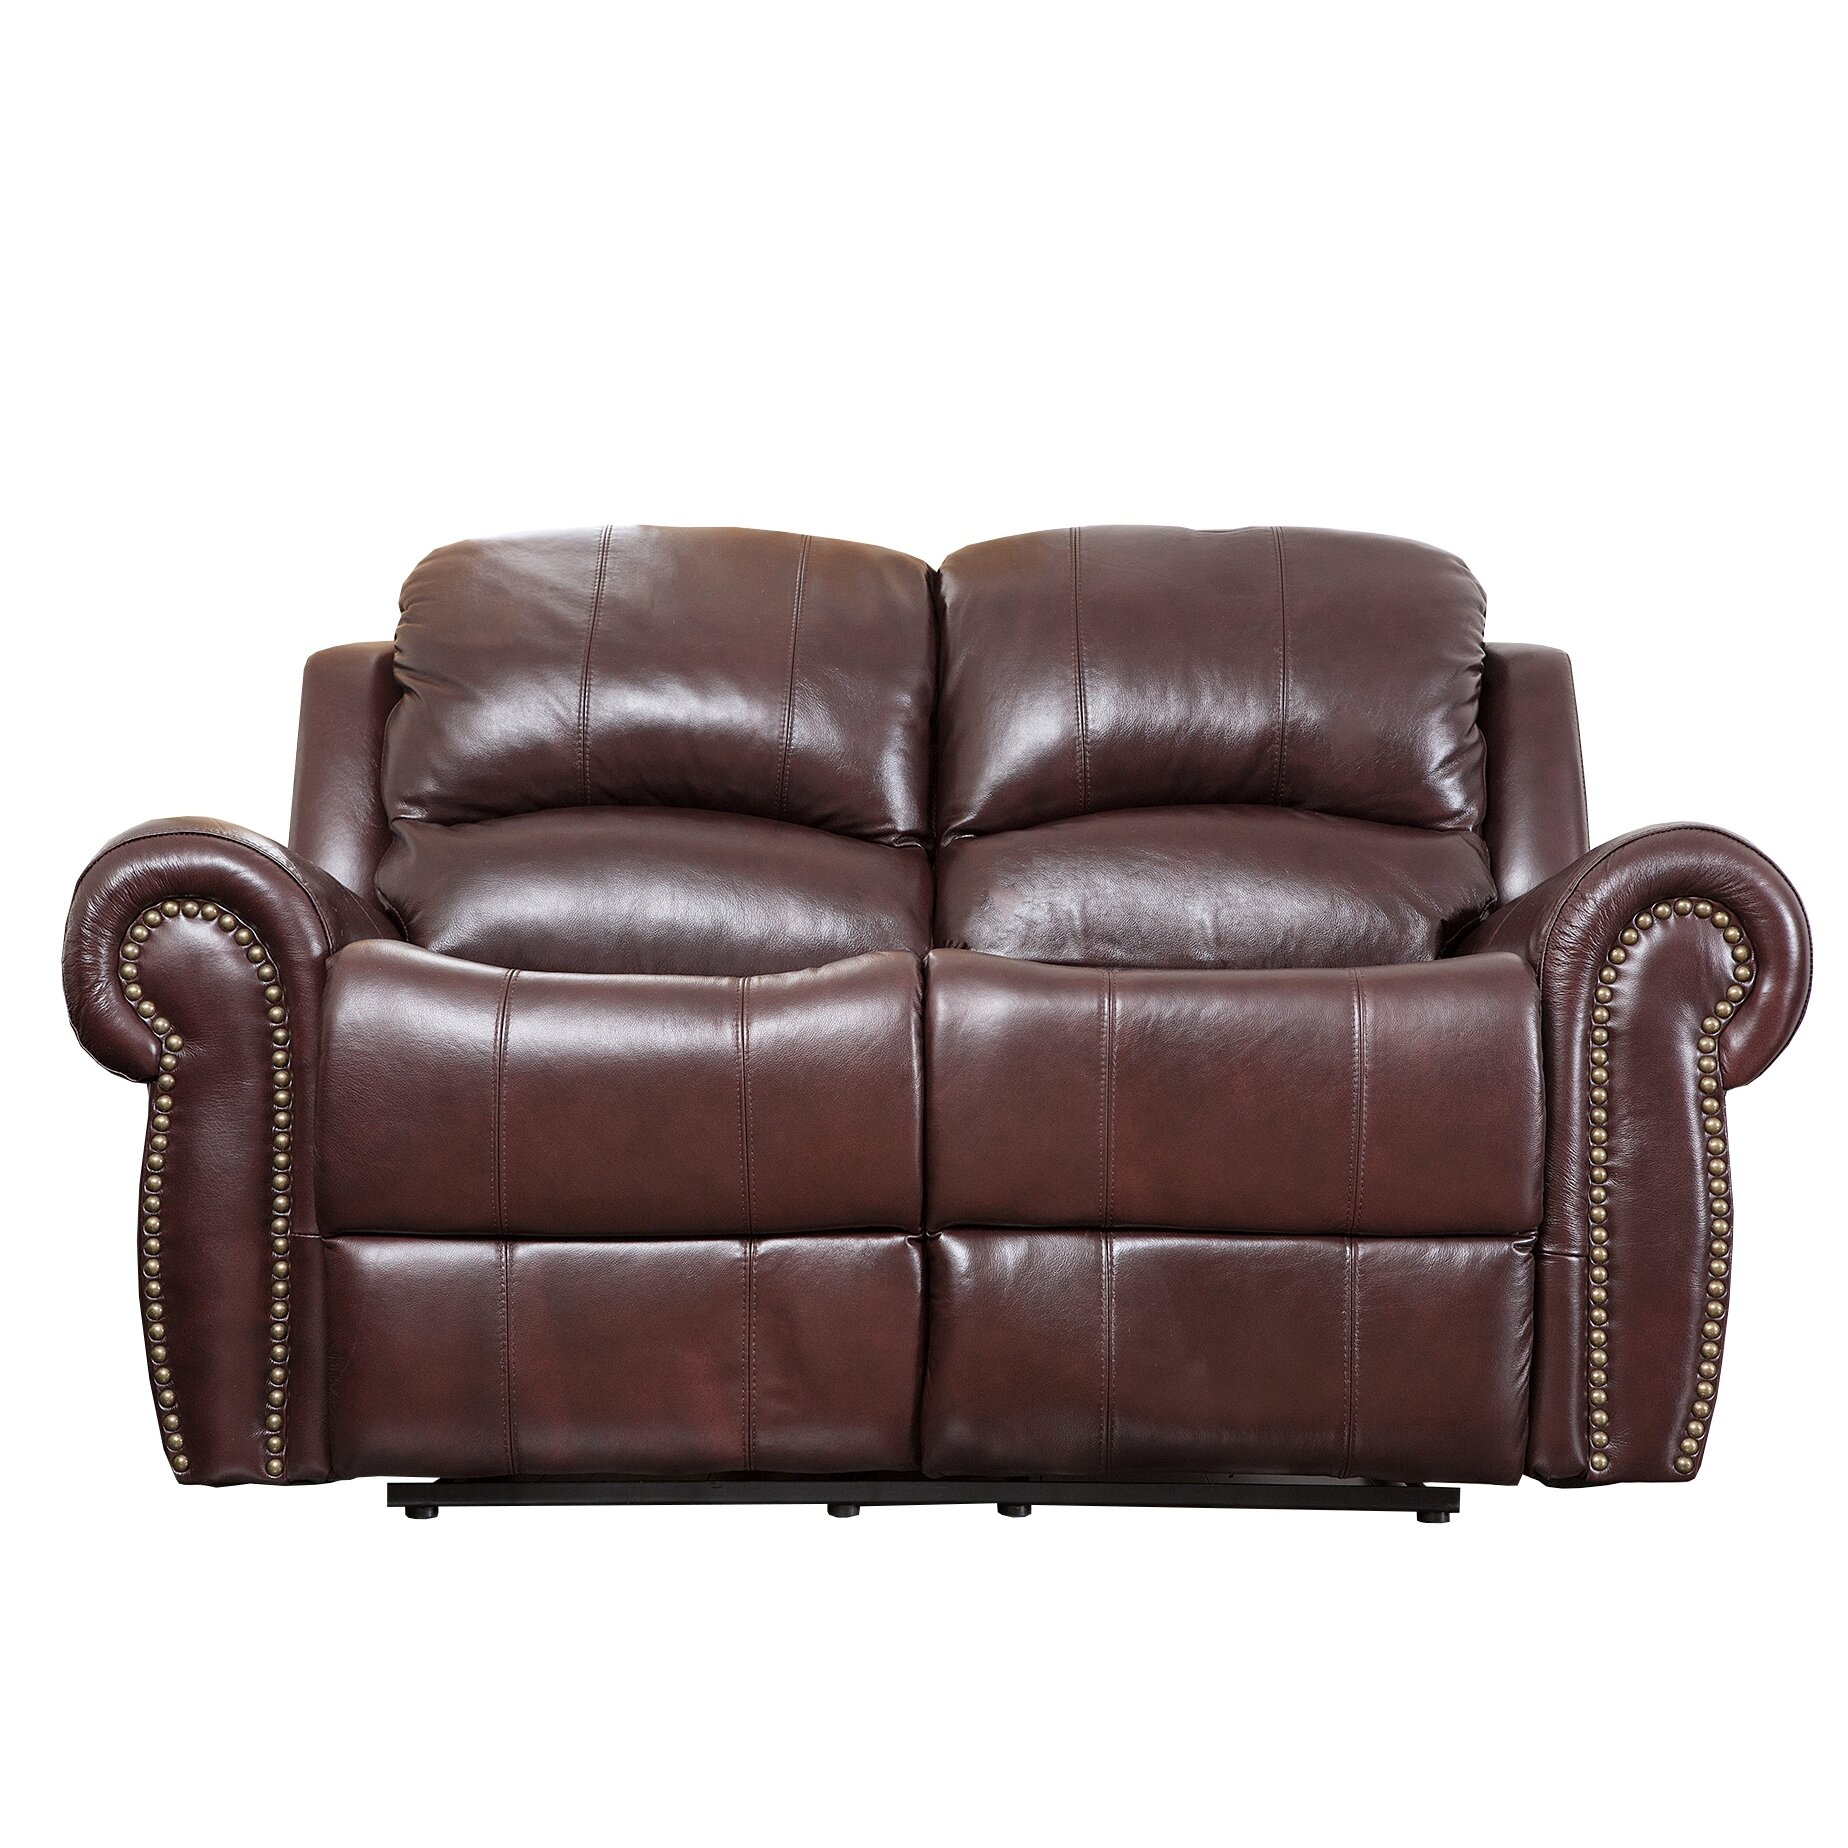 Abbyson living sedona leather reclining loveseat reviews wayfair Leather reclining loveseat